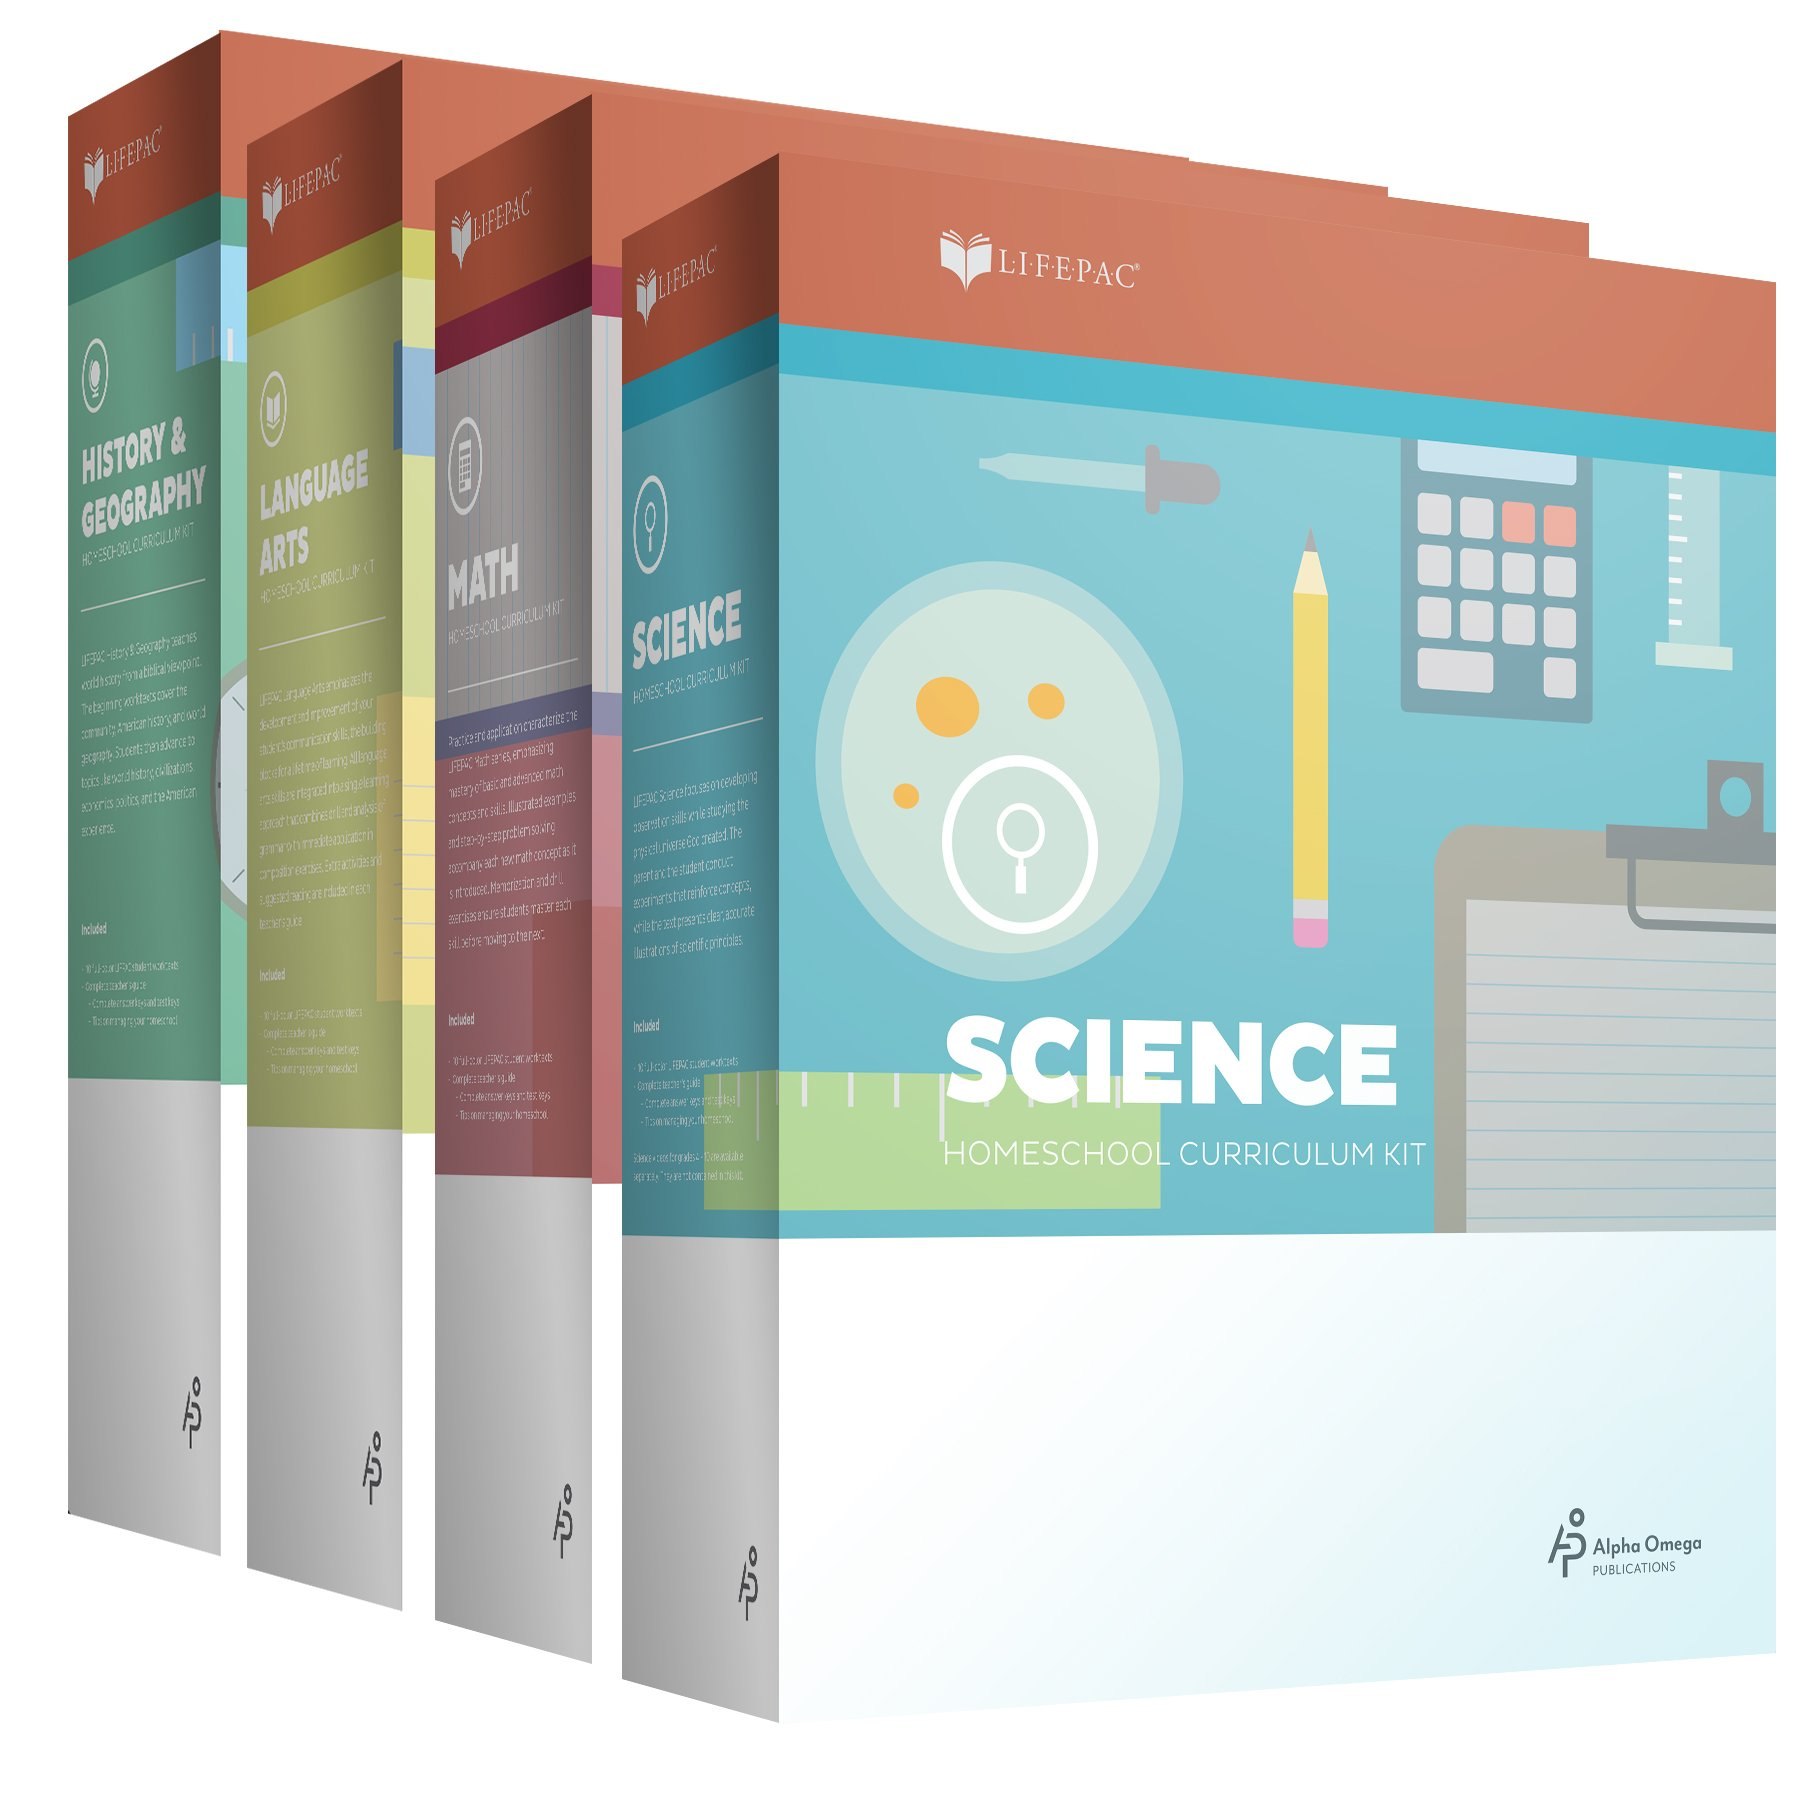 New Lifepac Grade 4 AOP 4-Subject Box Set (Math, Language, Science & History / Geography, Alpha Omega, 4TH GRADE, HomeSchooling CURRICULUM, New Life Pac [Paperback] by Alpha Omega Publications